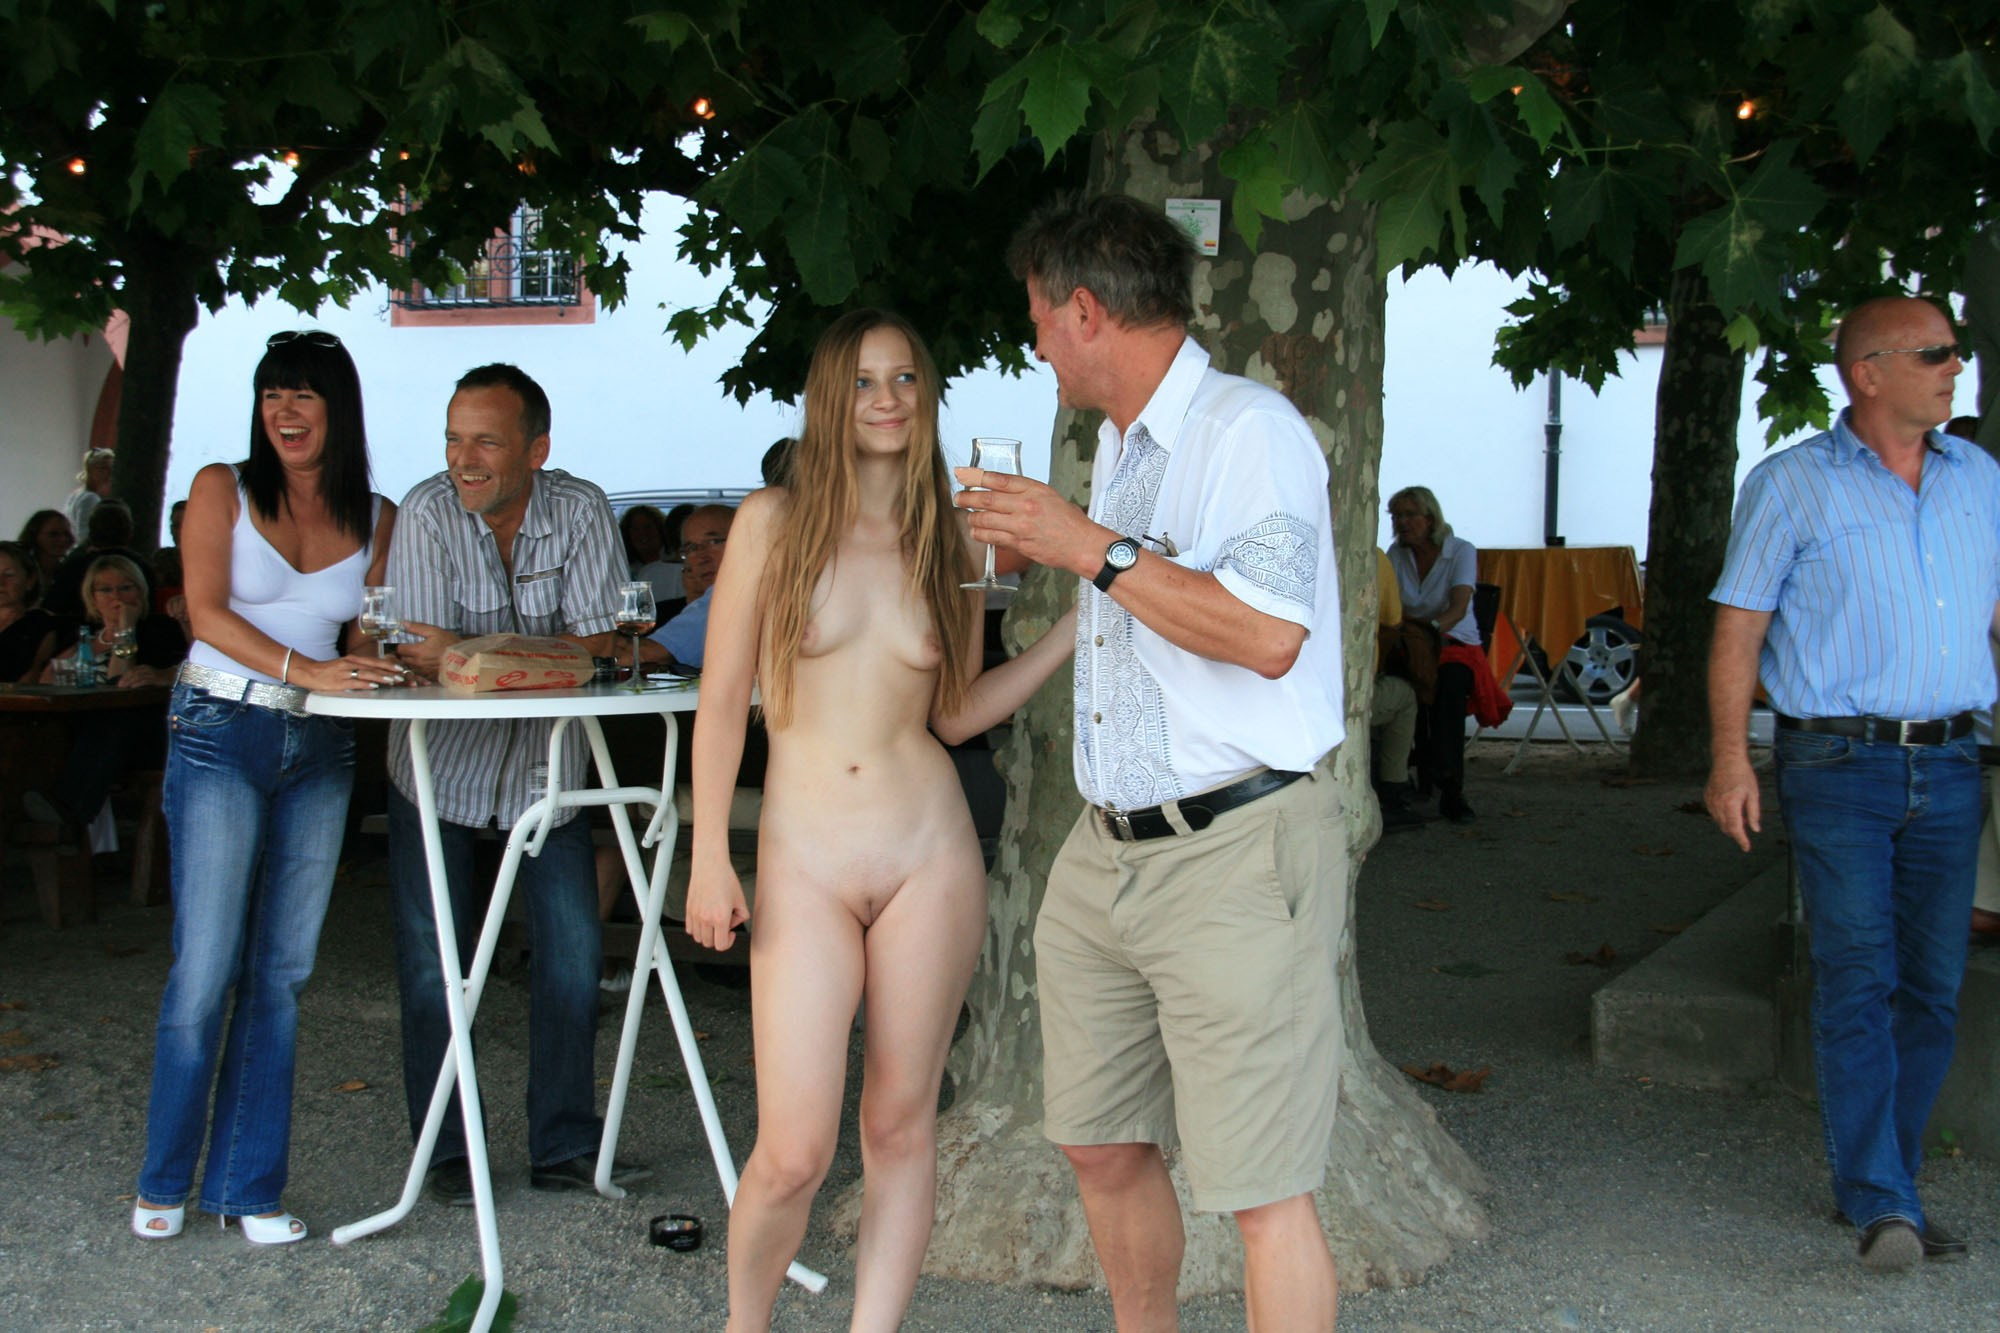 Pretty girls naked in public, pornmobille virgin first time